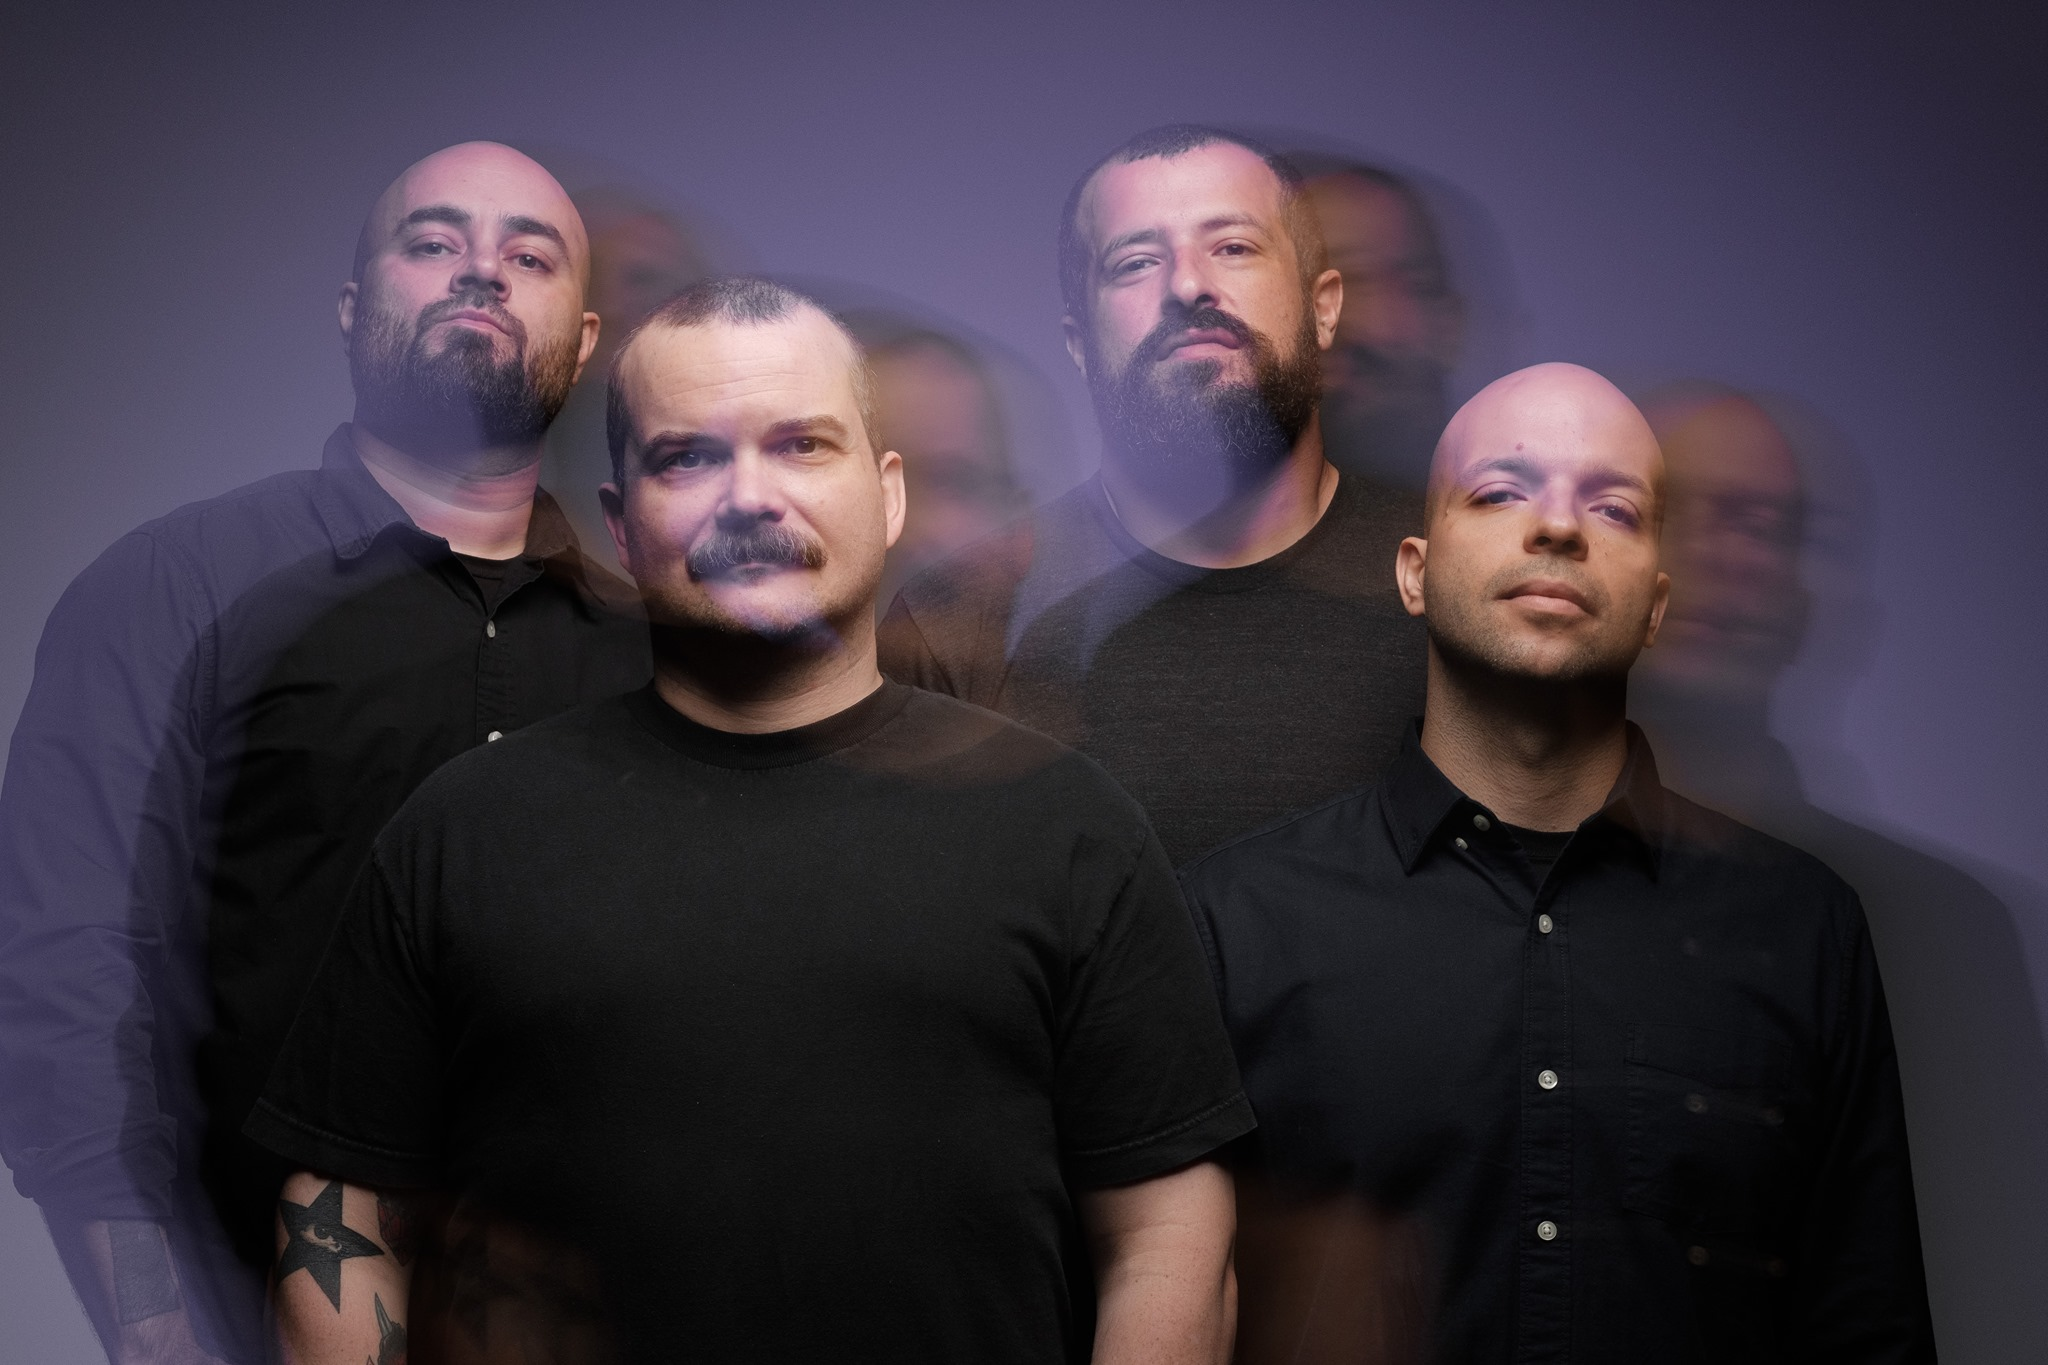 Monday, Sept 23 Motorbreath Presents:   Torche   Horsewhip  + special guests TBA  at The Atlantic 9pm, $7 advance / $10 at the door   Buy Tickets